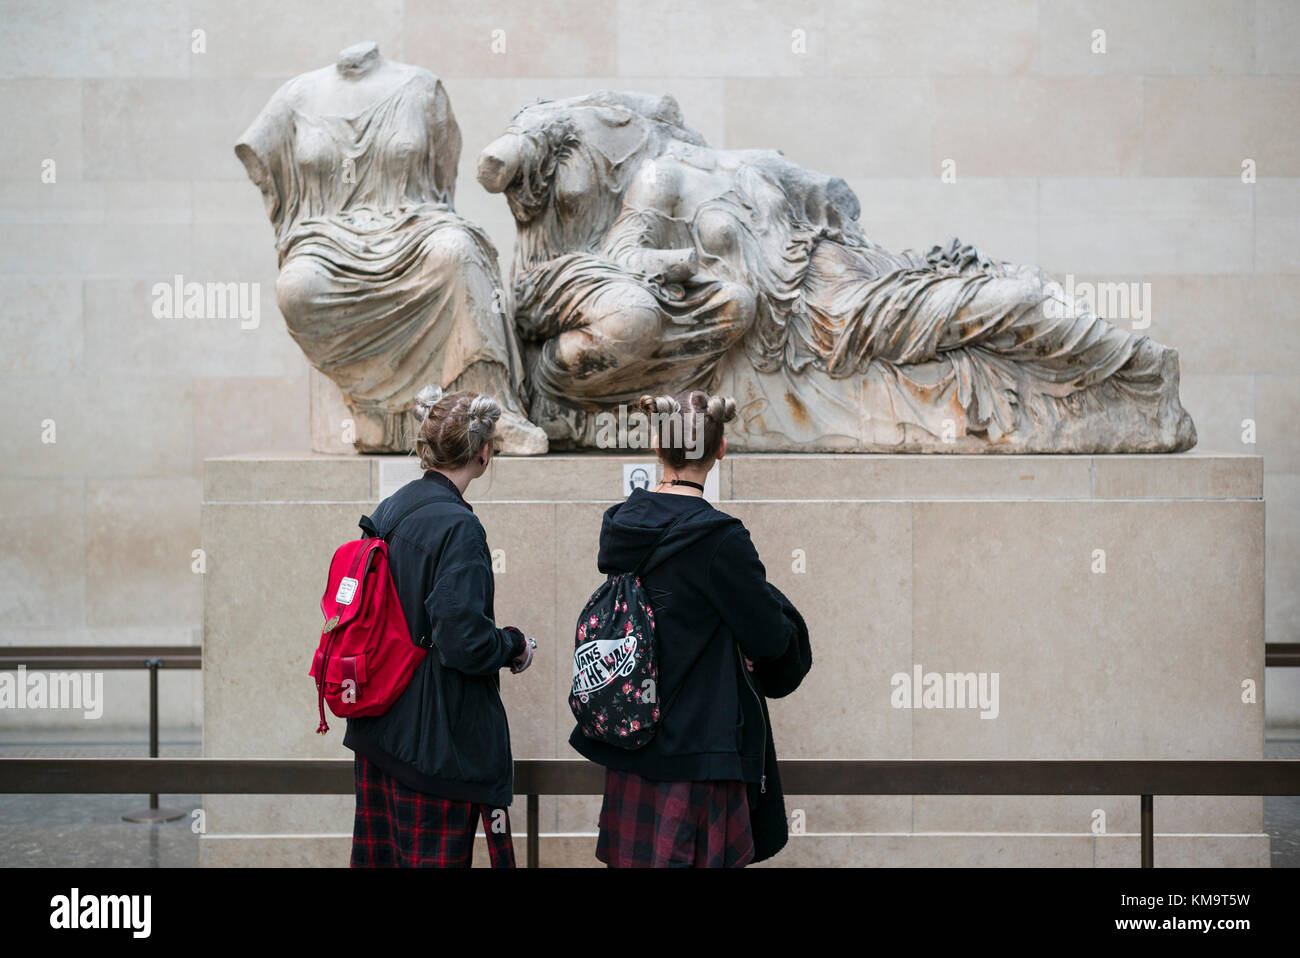 London. England. Visitors to the British Museum looking at the ancient Parthenon sculptures aka Elgin Marbles. Stock Photo